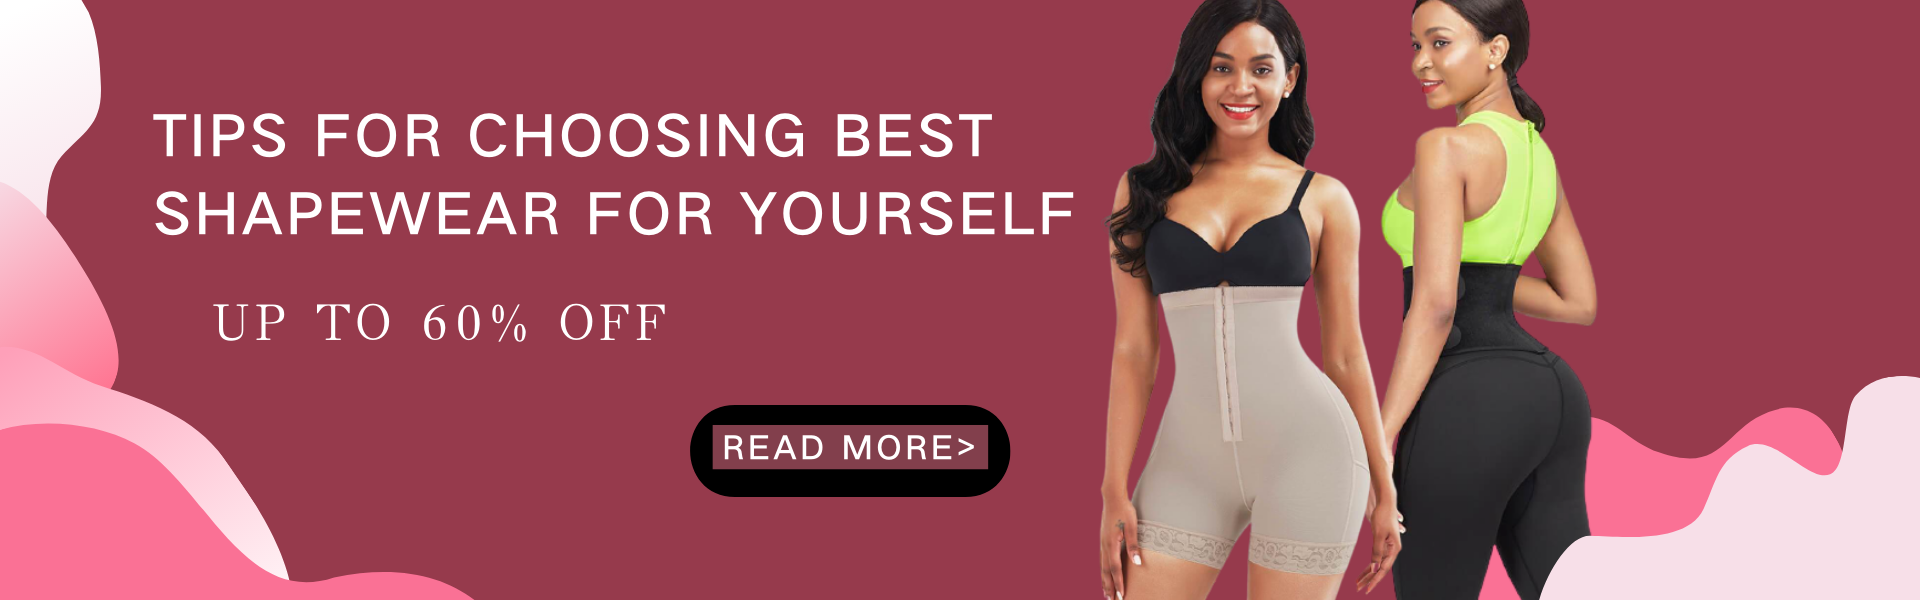 Tips for Choosing Best Shapewear for Yourself